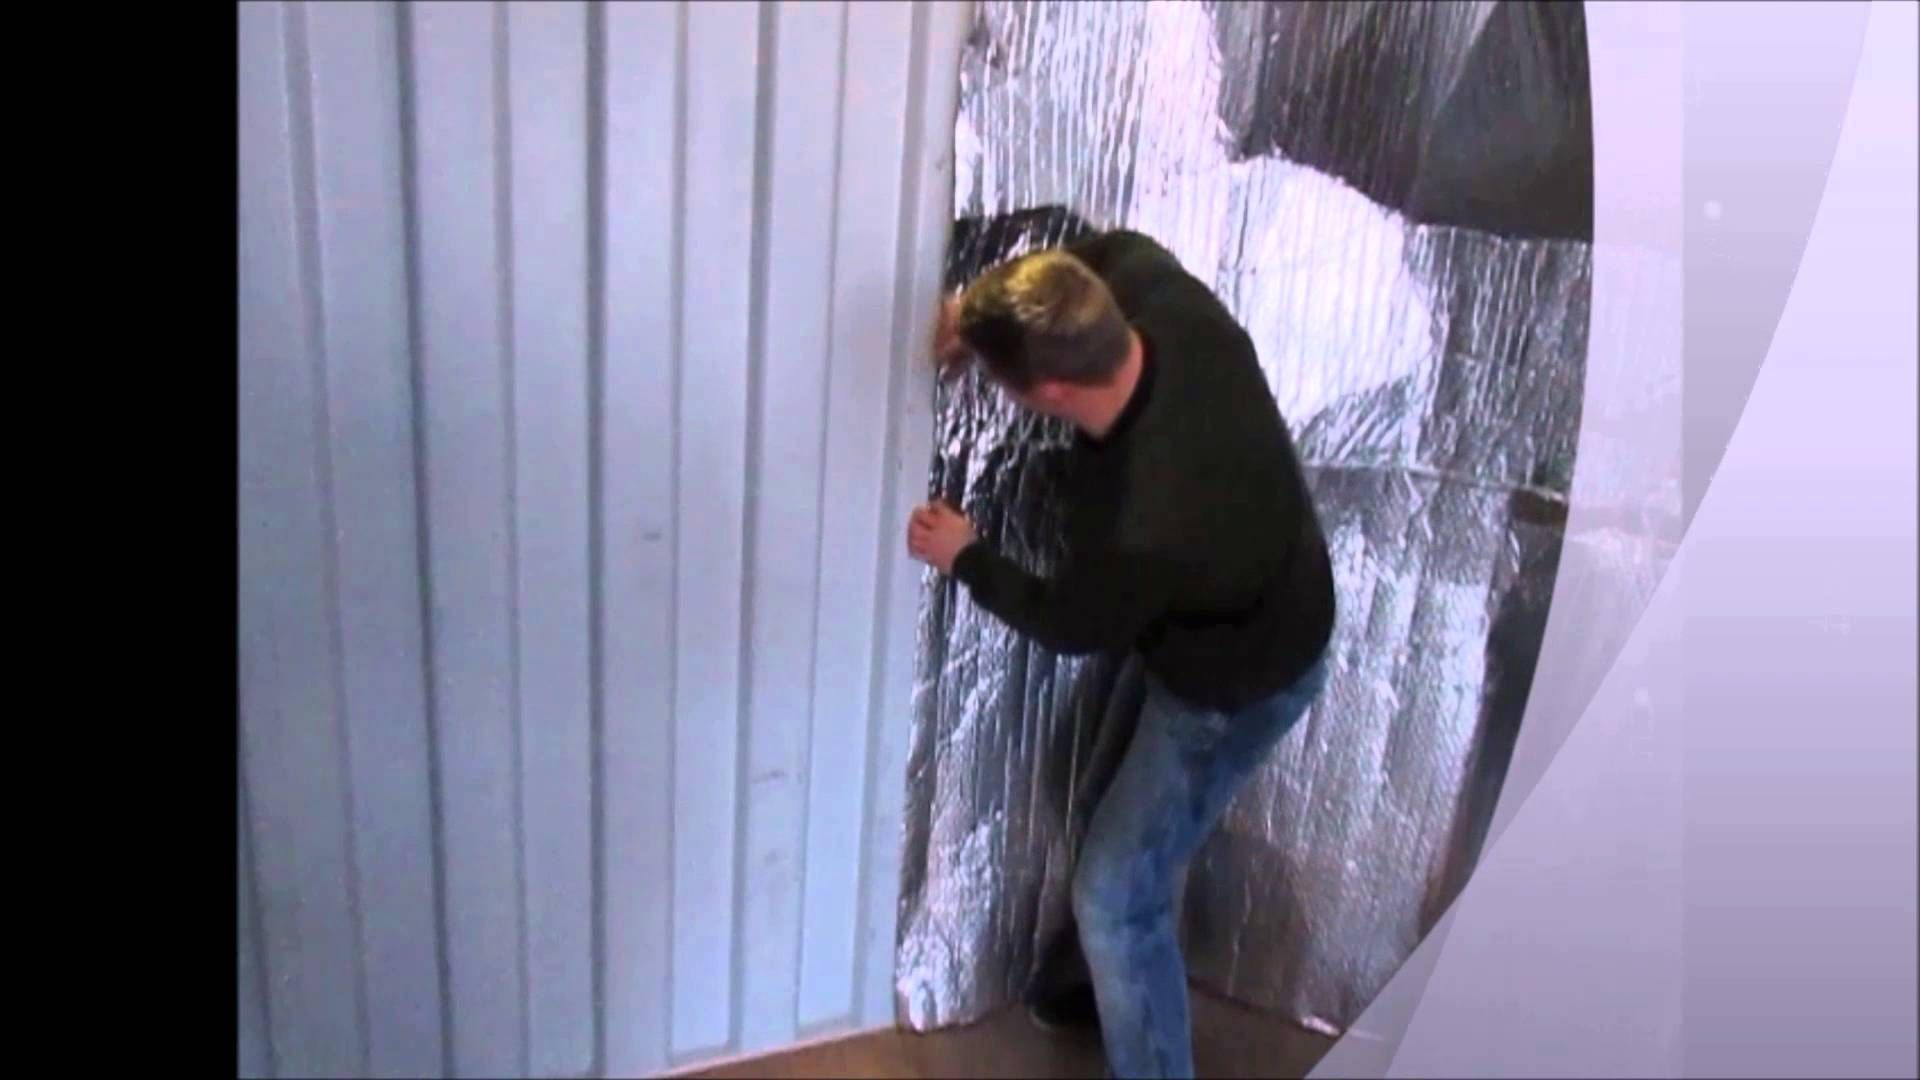 Shipping container homes youtube on pinterest shipping containers - How To Insulate A Shipping Container To Prevent Frost Or Maintain Temperature Youtube